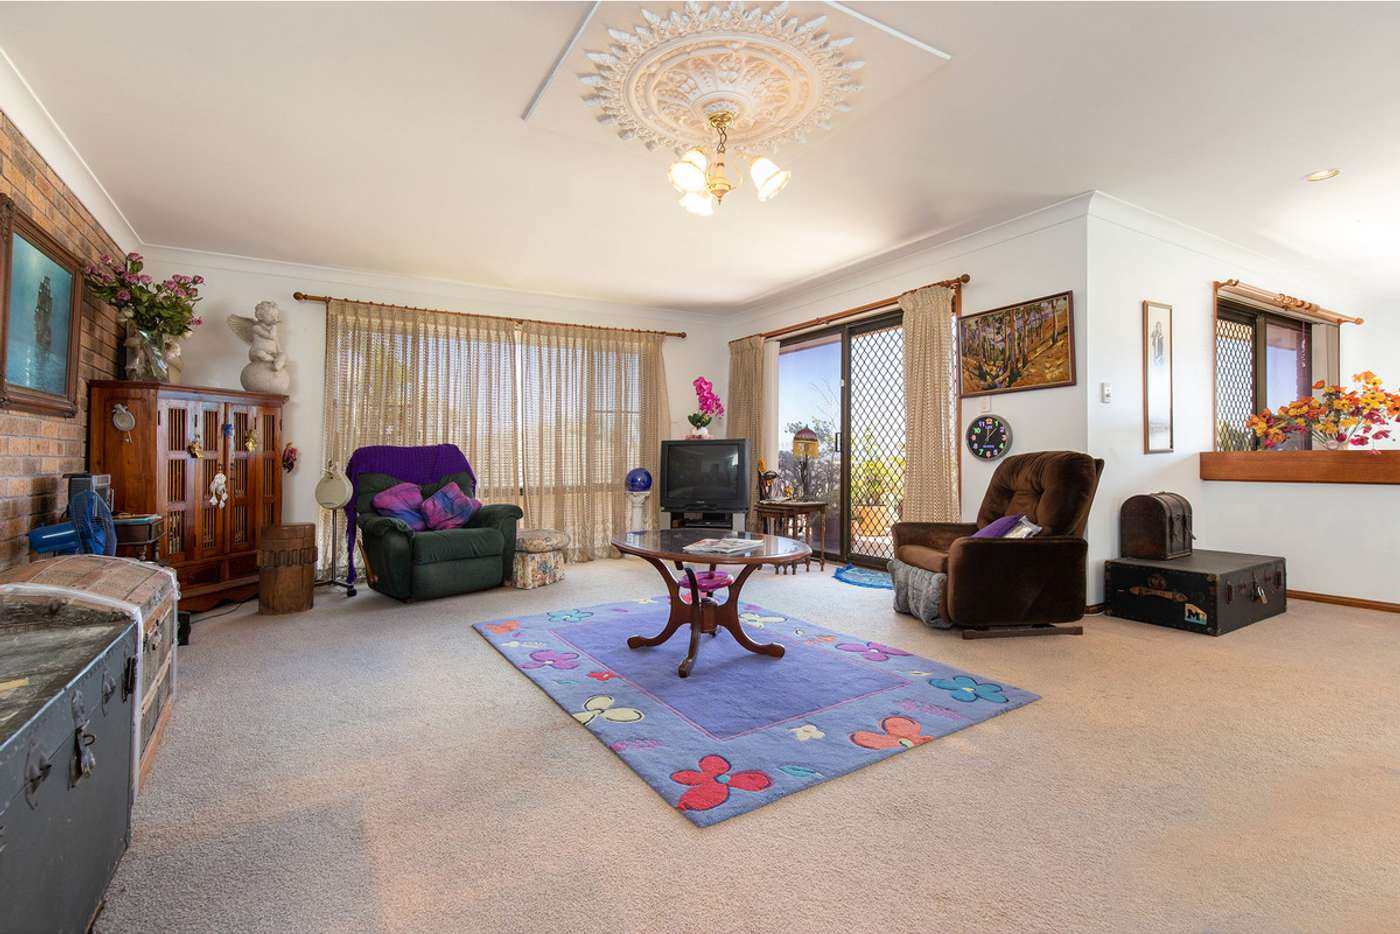 Fifth view of Homely house listing, 53 Pioneer Drive, Forster NSW 2428